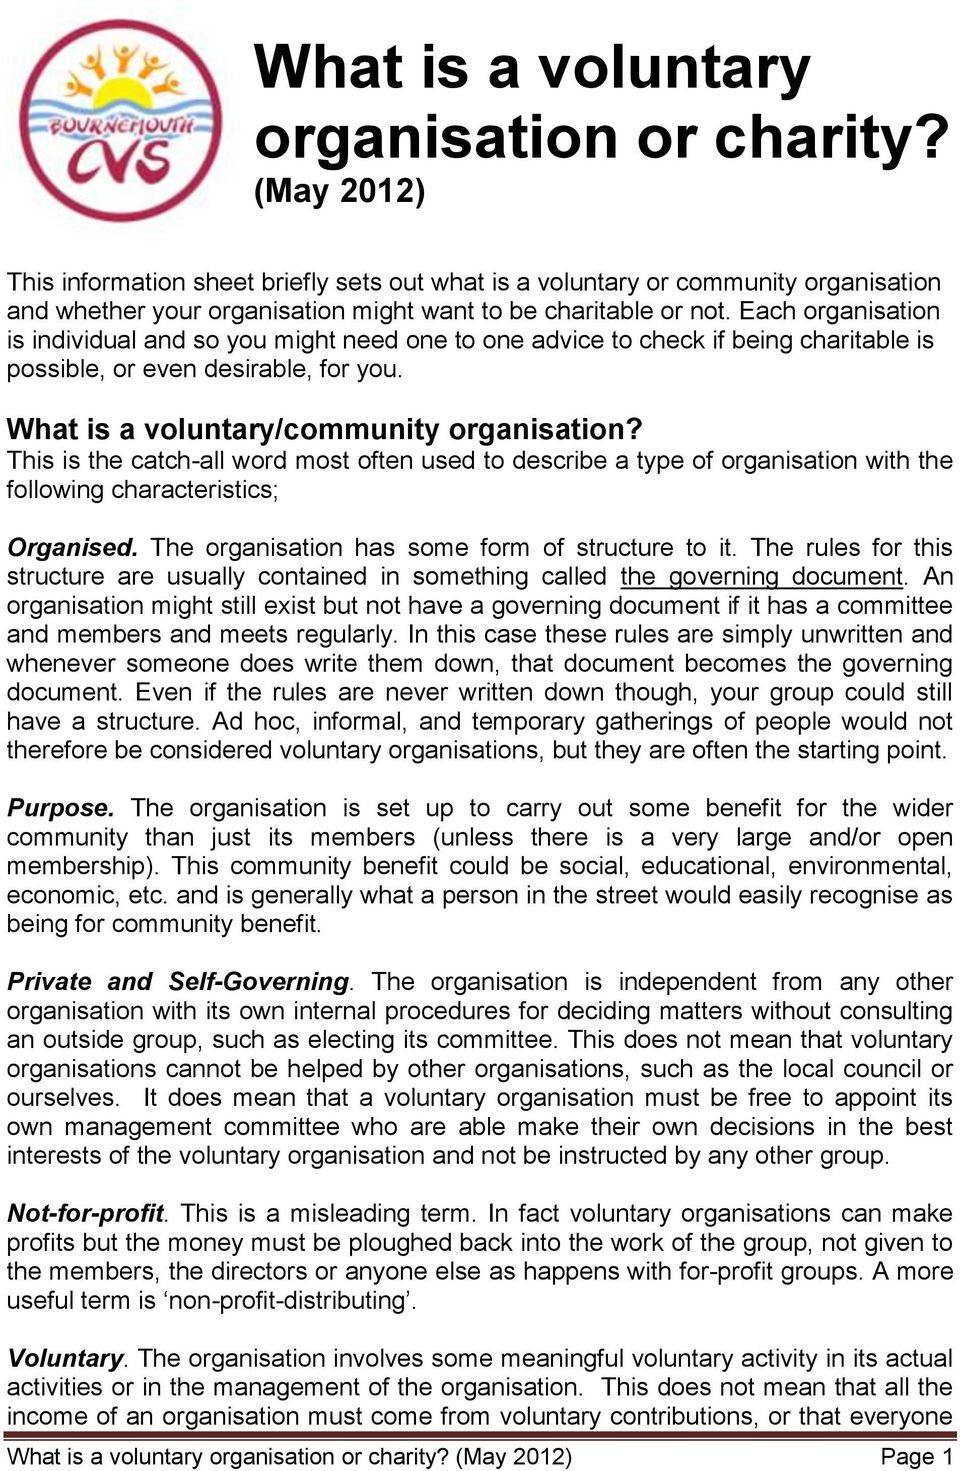 Each organisation is individual and so you might need one to one advice to check if being charitable is possible, or even desirable, for you. What is a voluntary/community organisation?